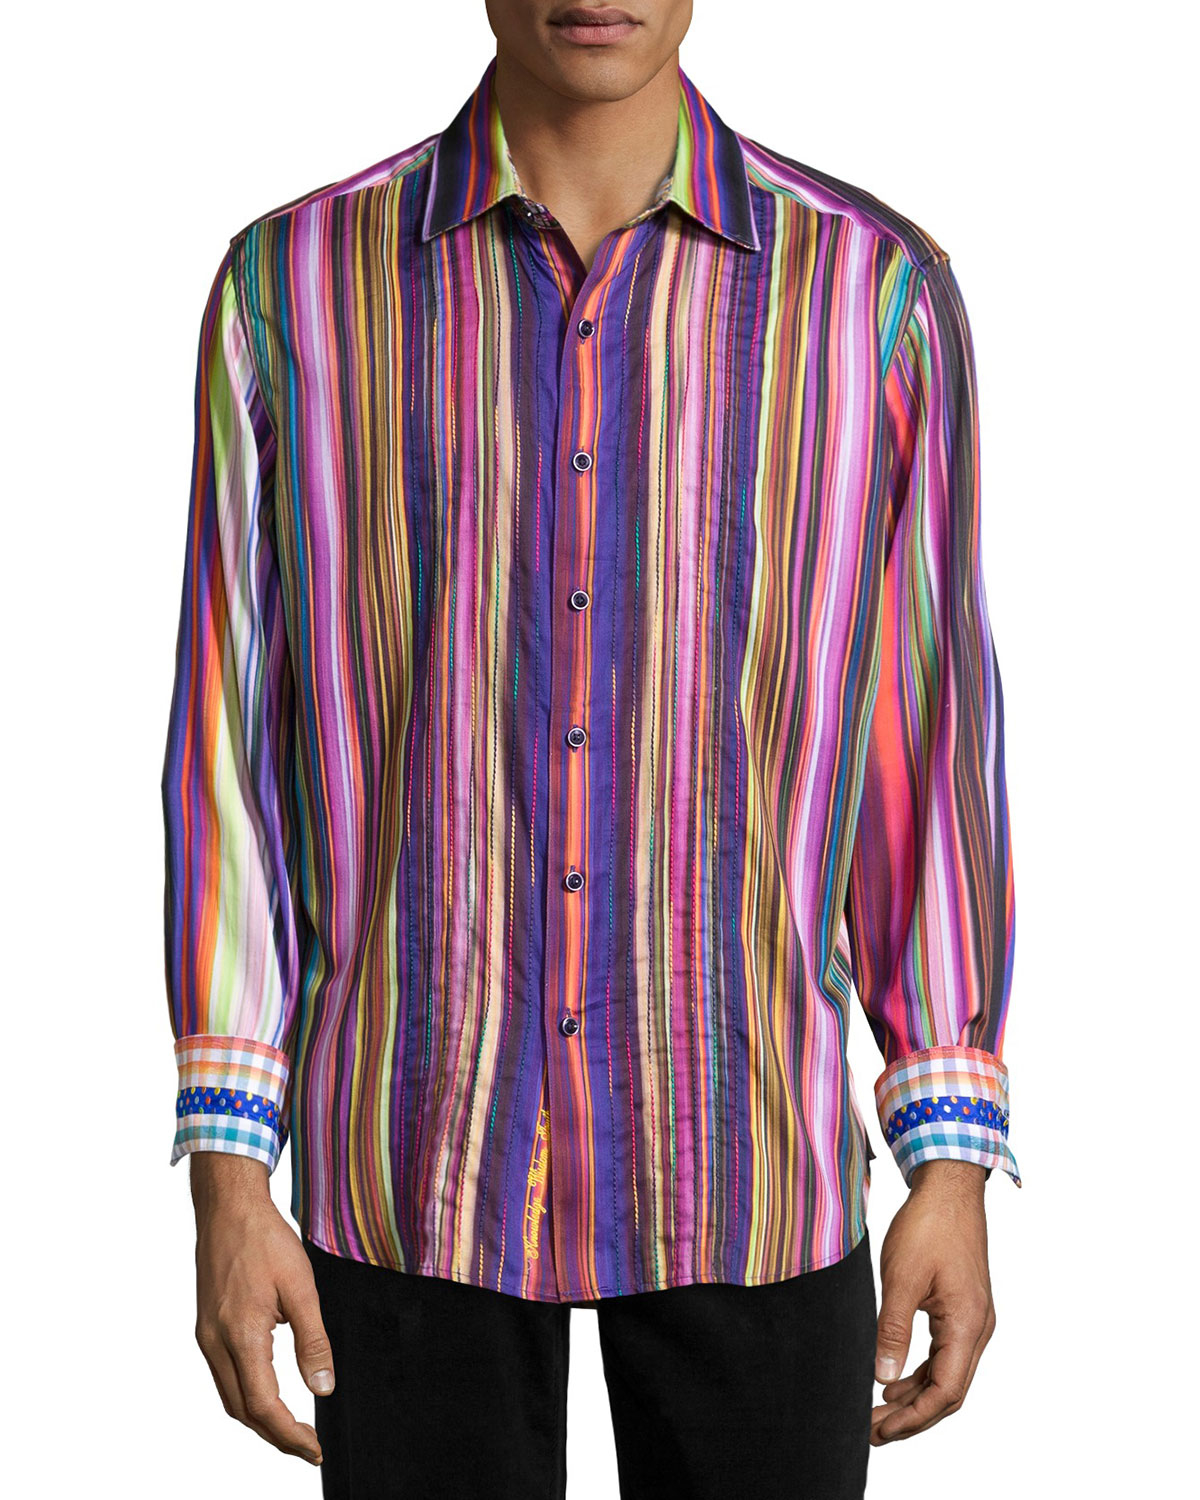 Robert graham veracruz embroidered striped classic fit for Where are robert graham shirts made